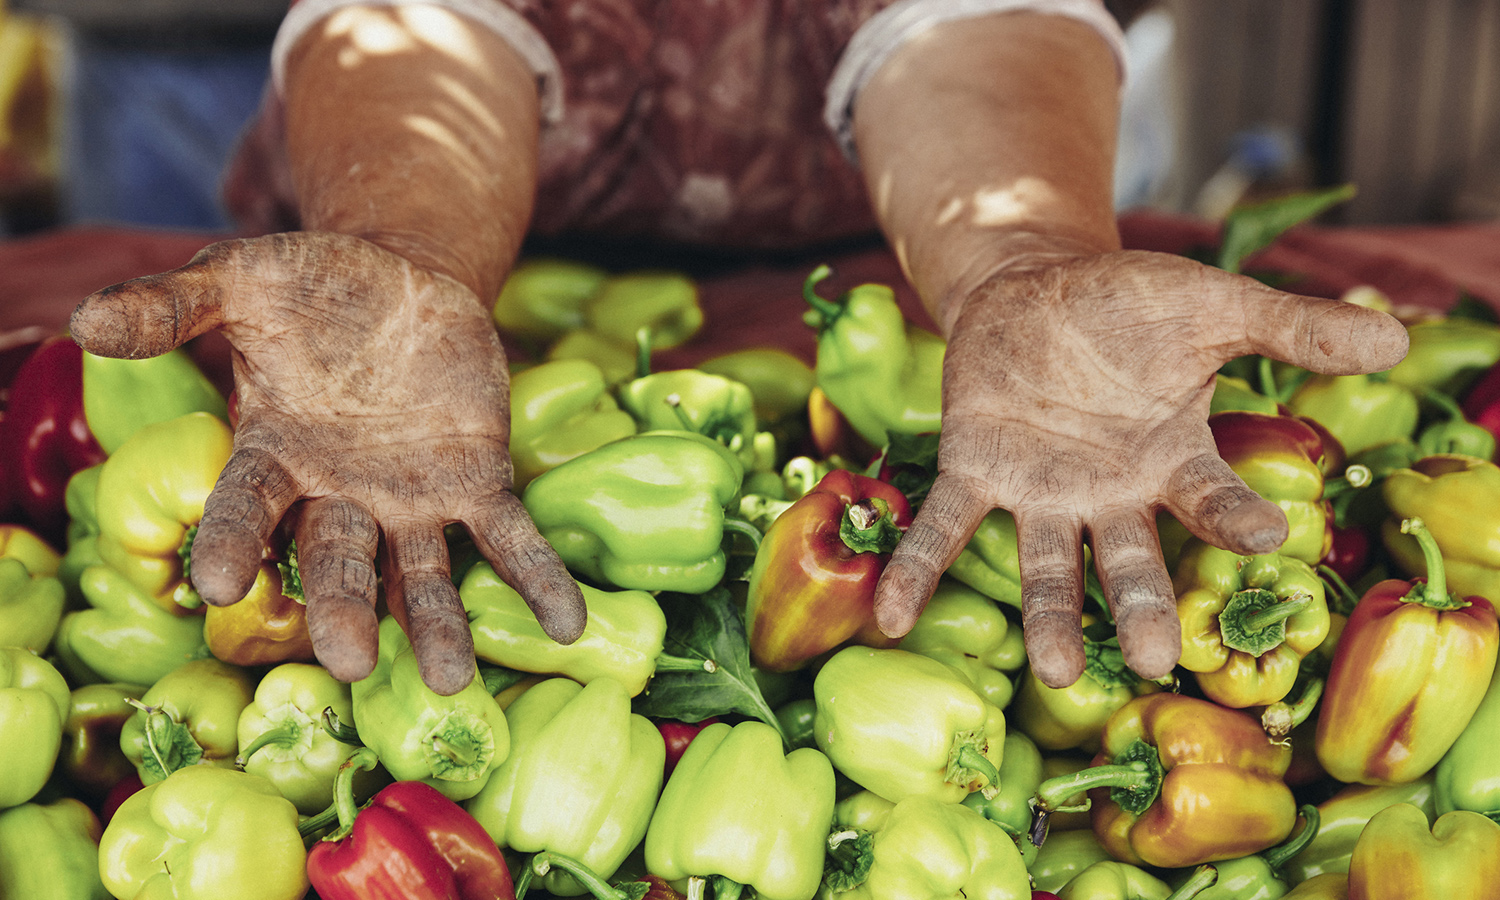 Working toward a more equitable food system, these 14 Latinx food heroes are reshaping every aspect of the food industry, from farming to education about healthy eating.